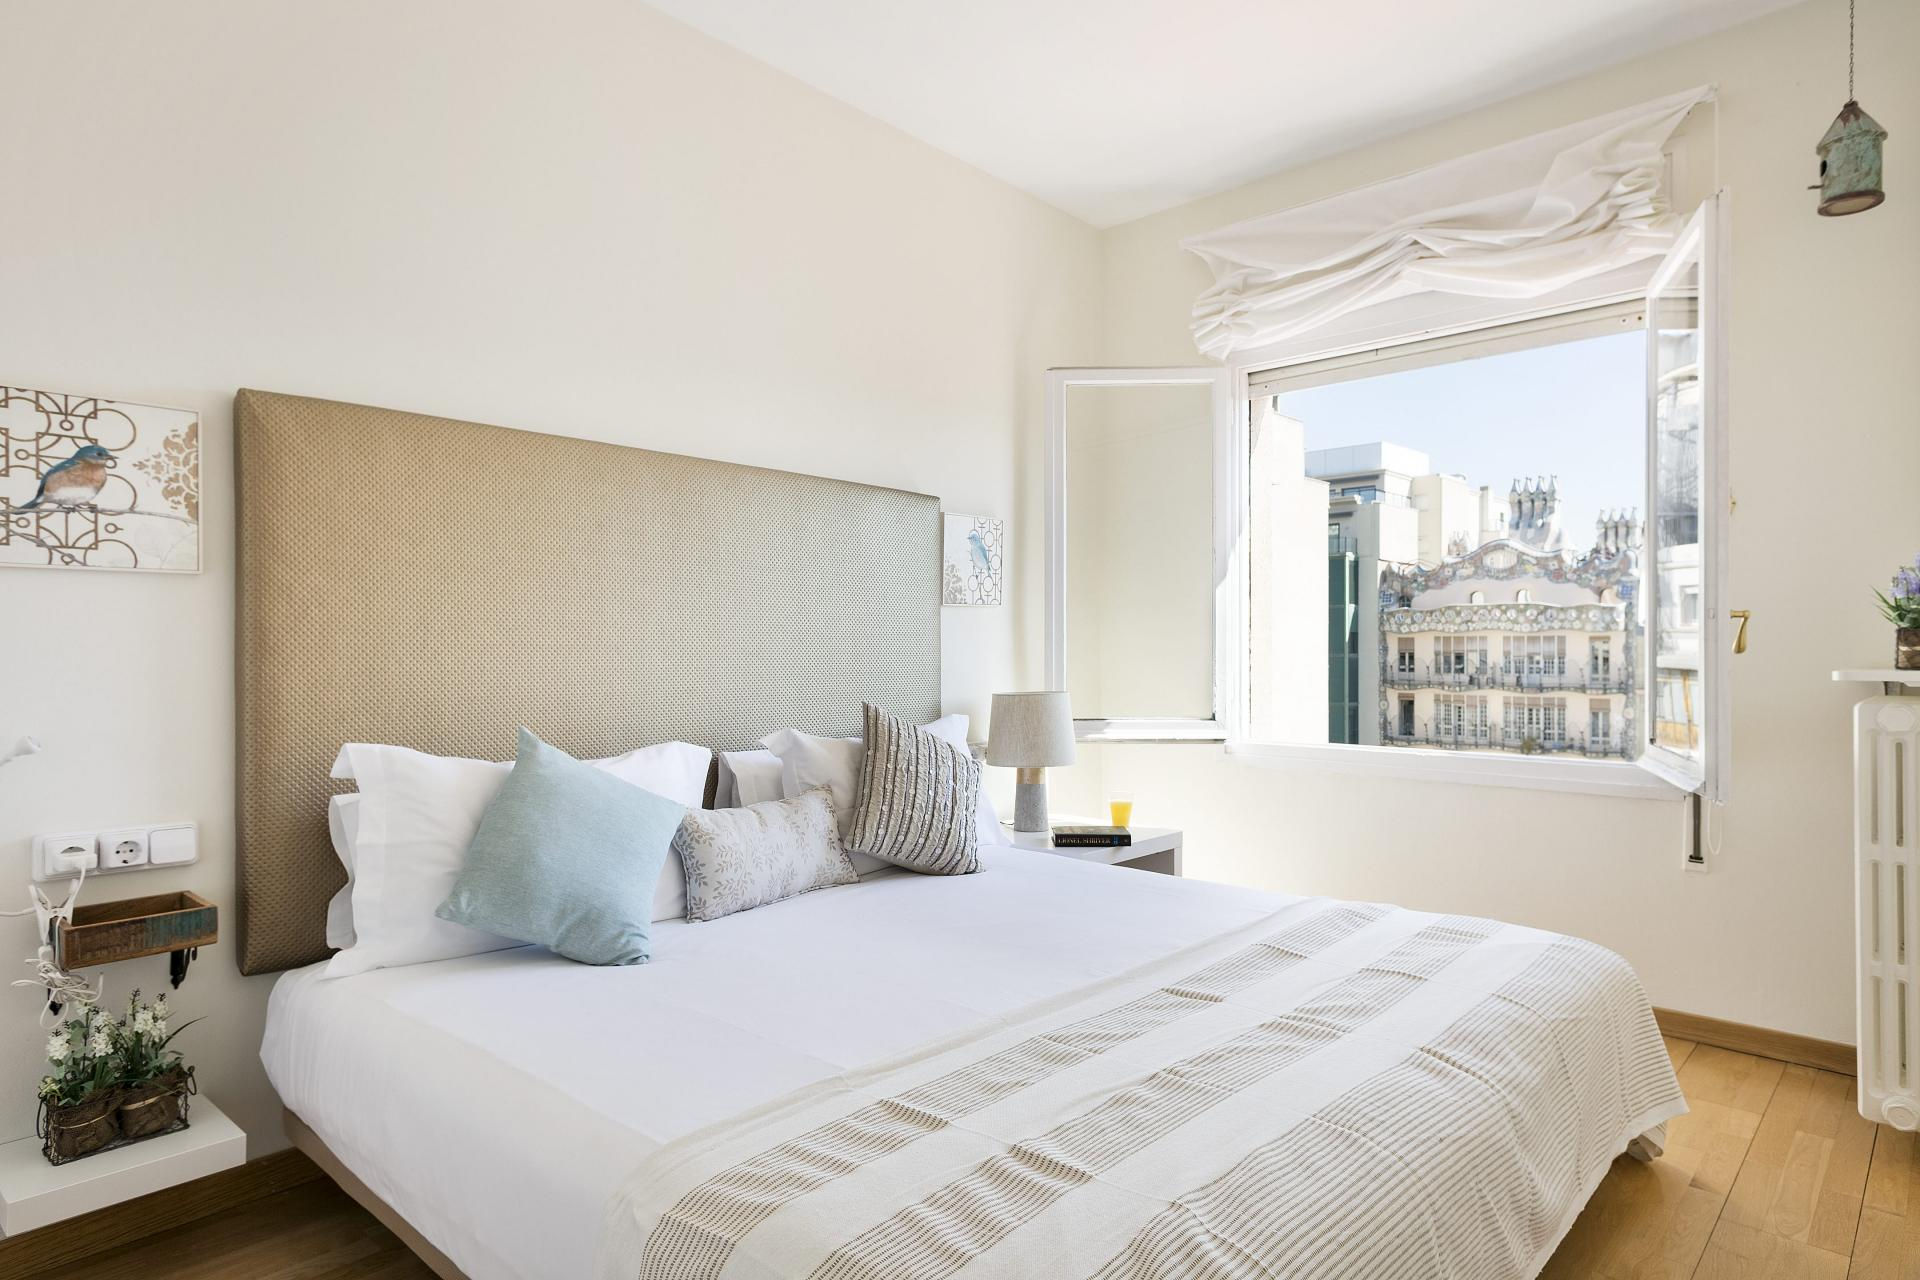 Comfy bed at Sunny Serviced Apartments, Eixample, Barcelona - Citybase Apartments